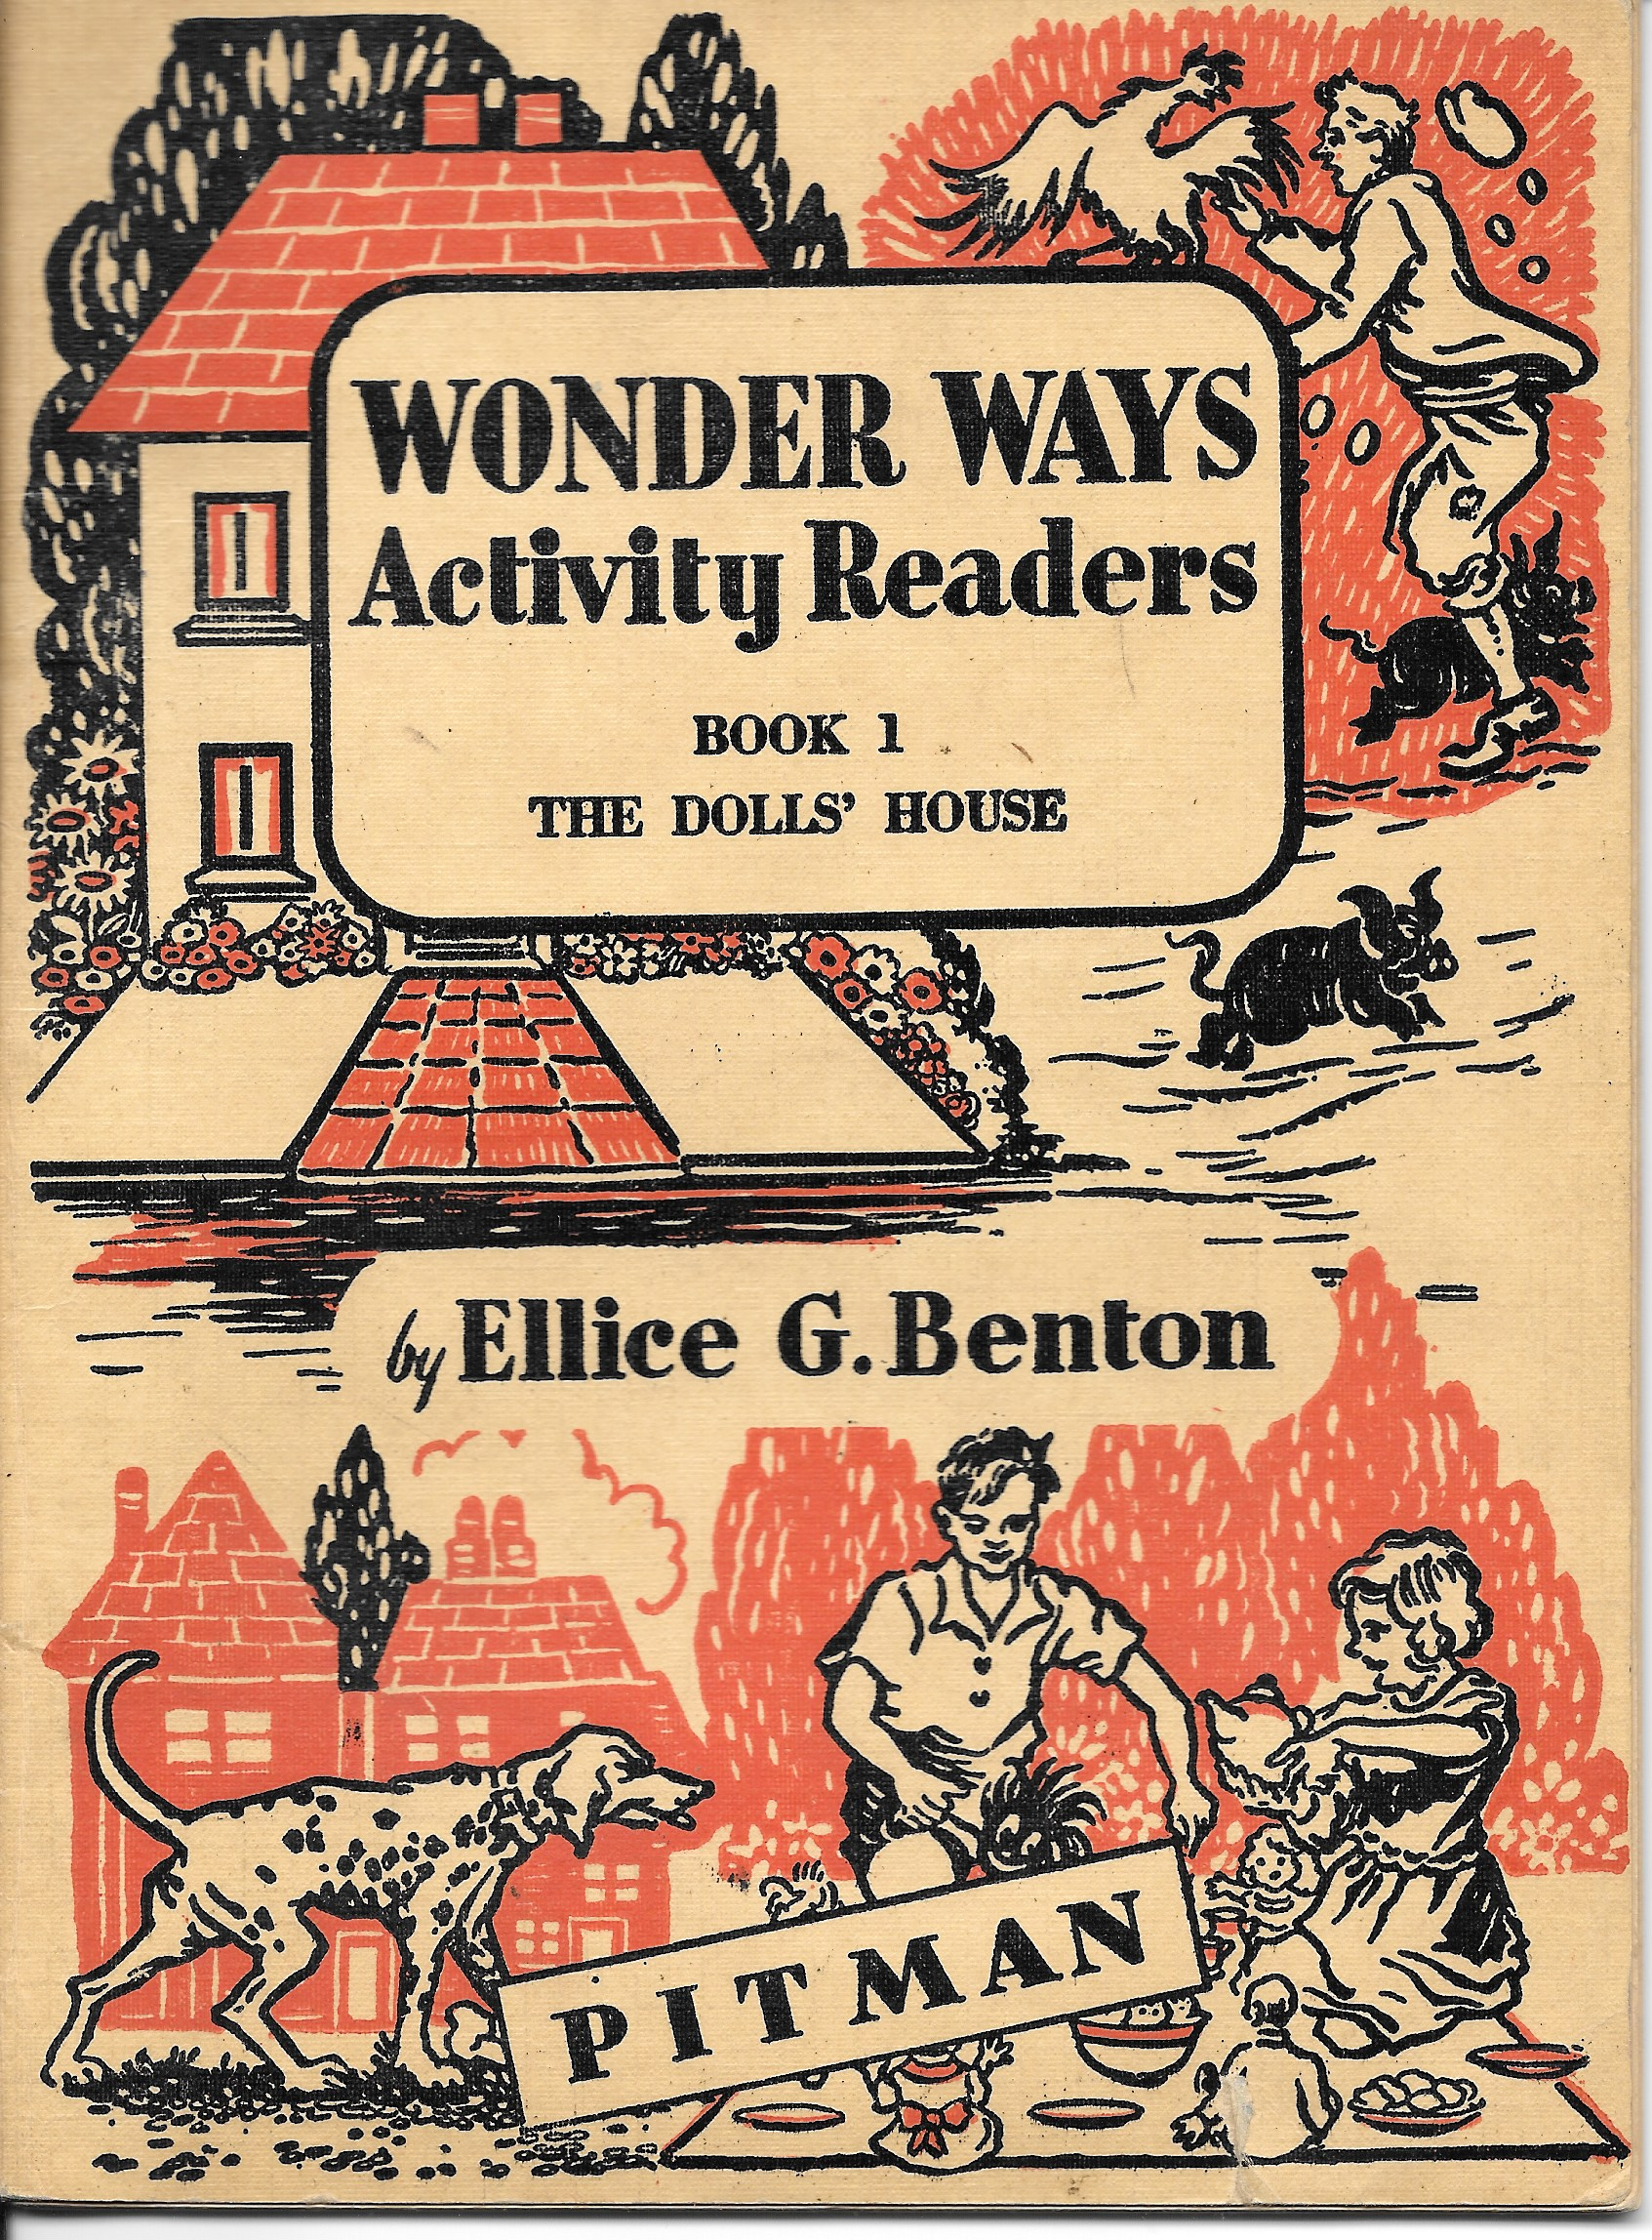 Wonder Ways Activity Readers - The Doll's House